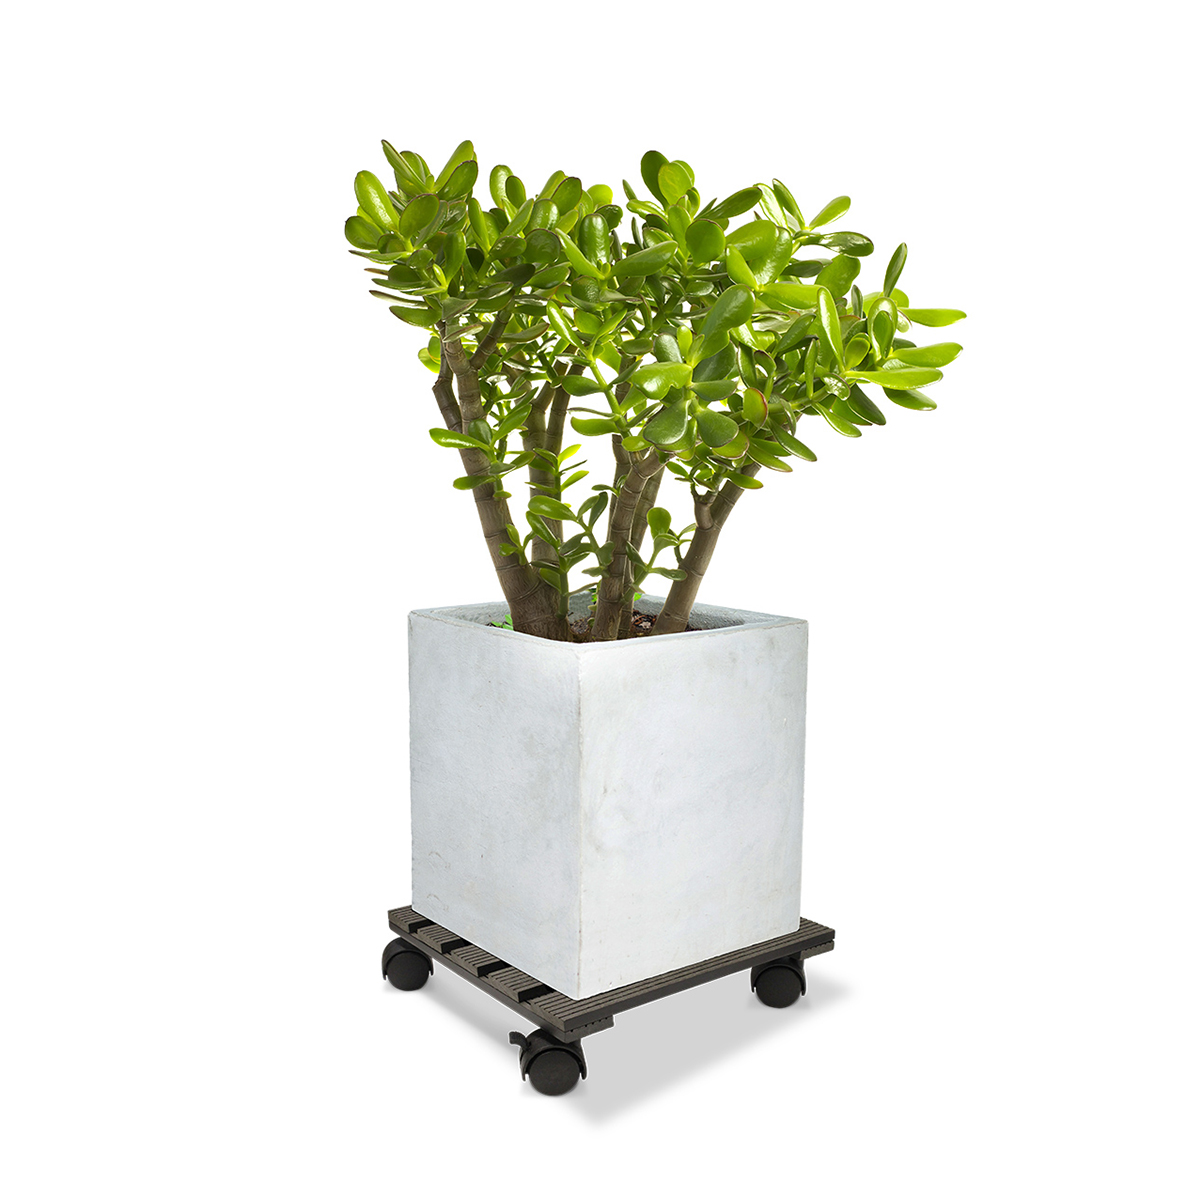 18535 Wood Poly Pot Trolley Square Charcoal 29cm with plant